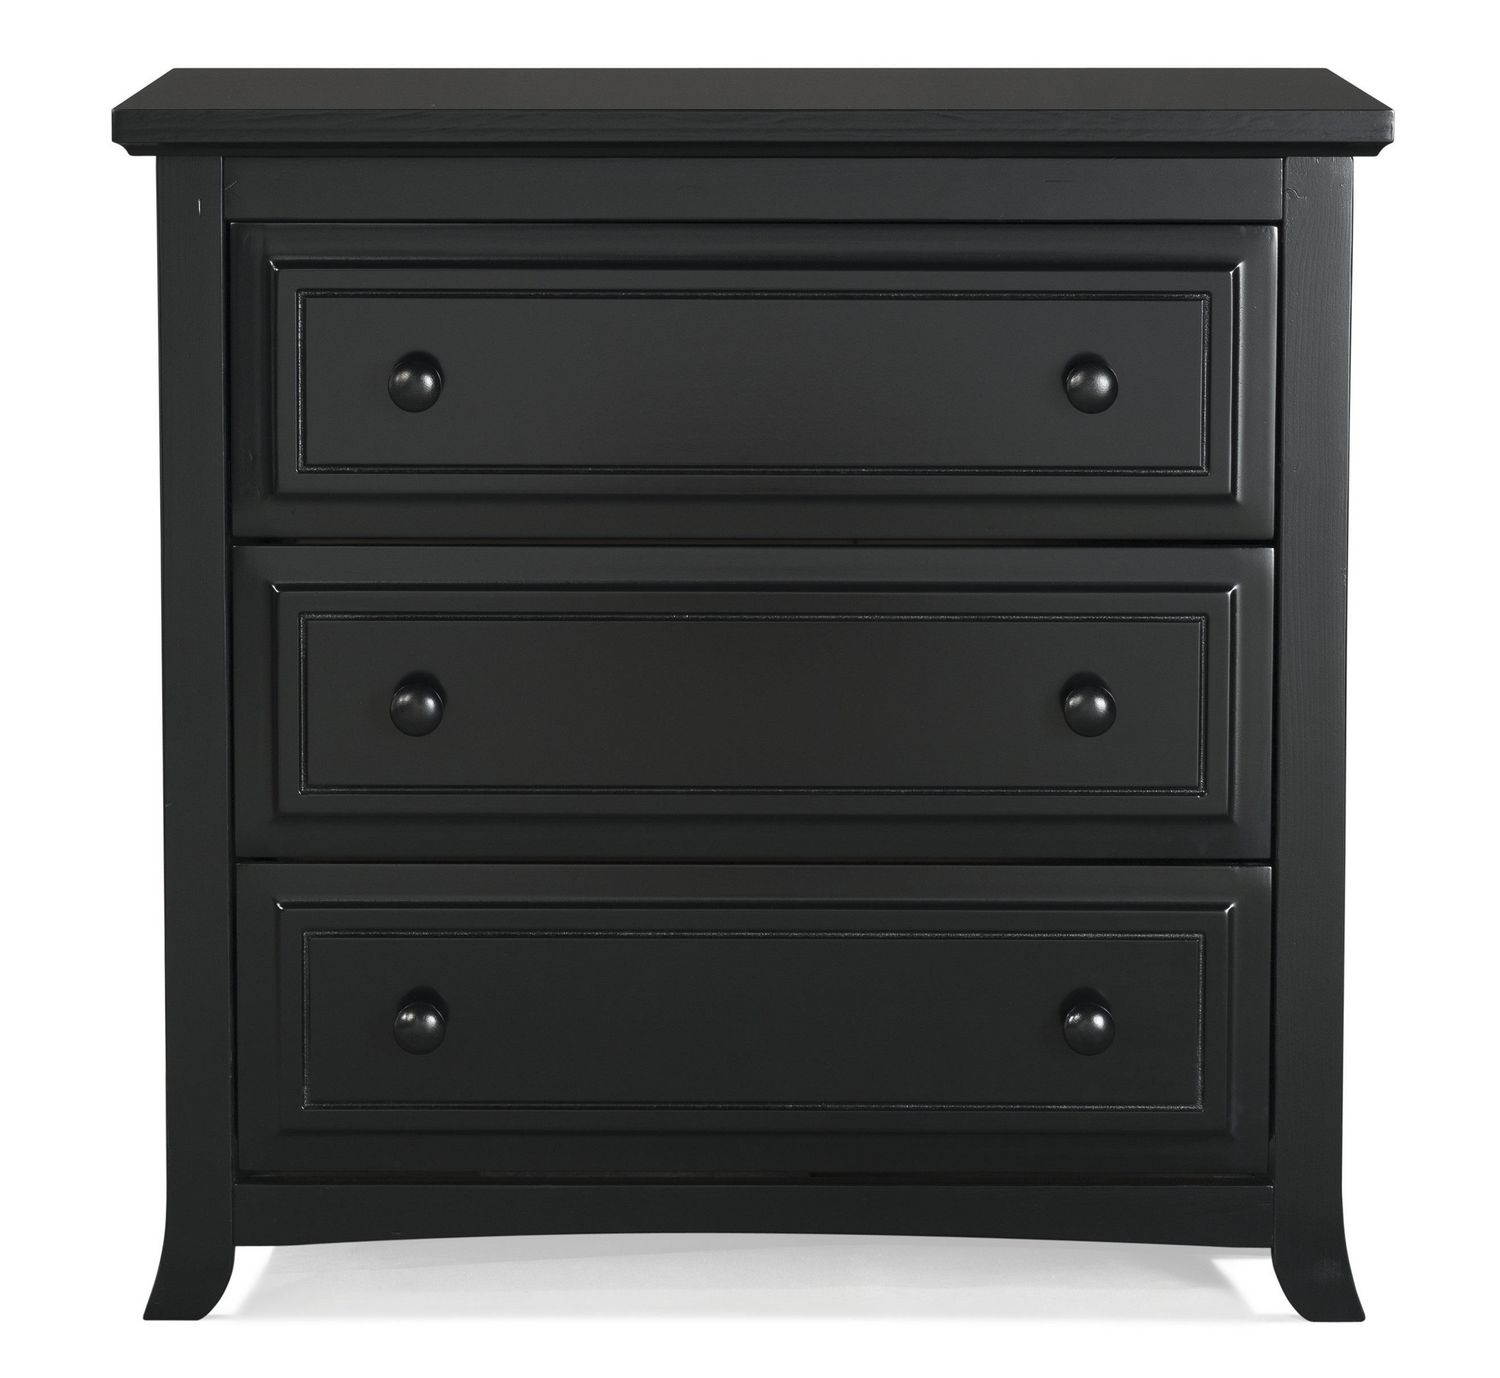 Small dresser walmart best of south shore soho dresser and mirror white soho Best price on bedroom dressers